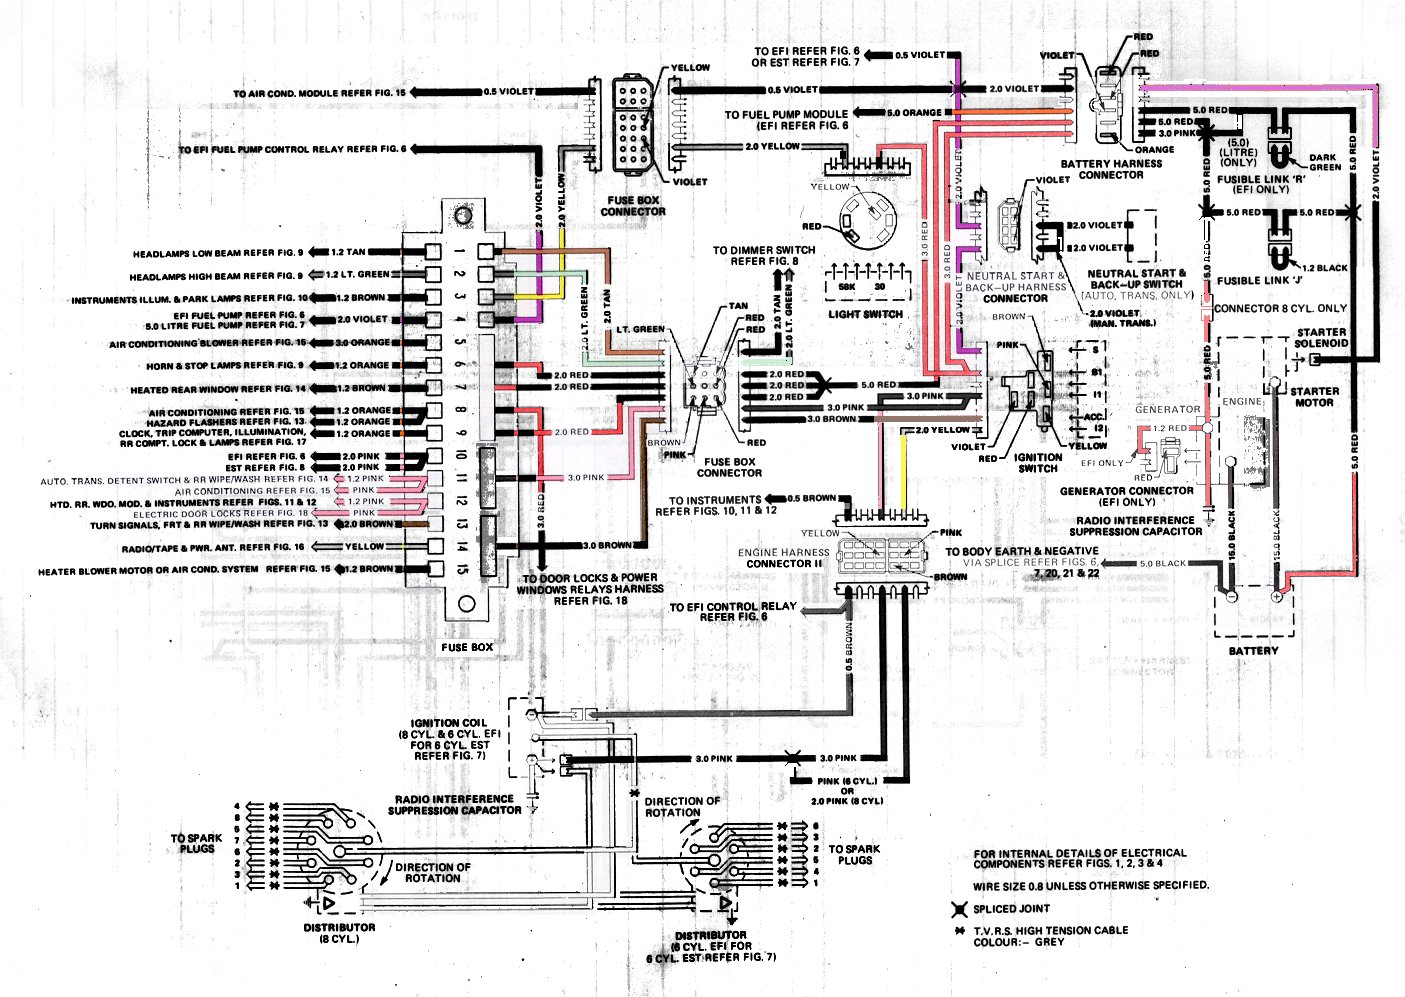 Wiring Diagram Likewise Vz Modore As Well - Wiring Diagram Expert on daisy diagram, glock diagram, ssd diagram, ipad diagram, gamo diagram, bersa diagram, wolf diagram, headphone diagram, macbook diagram, kimber diagram, usb diagram, apple diagram, ipod diagram,